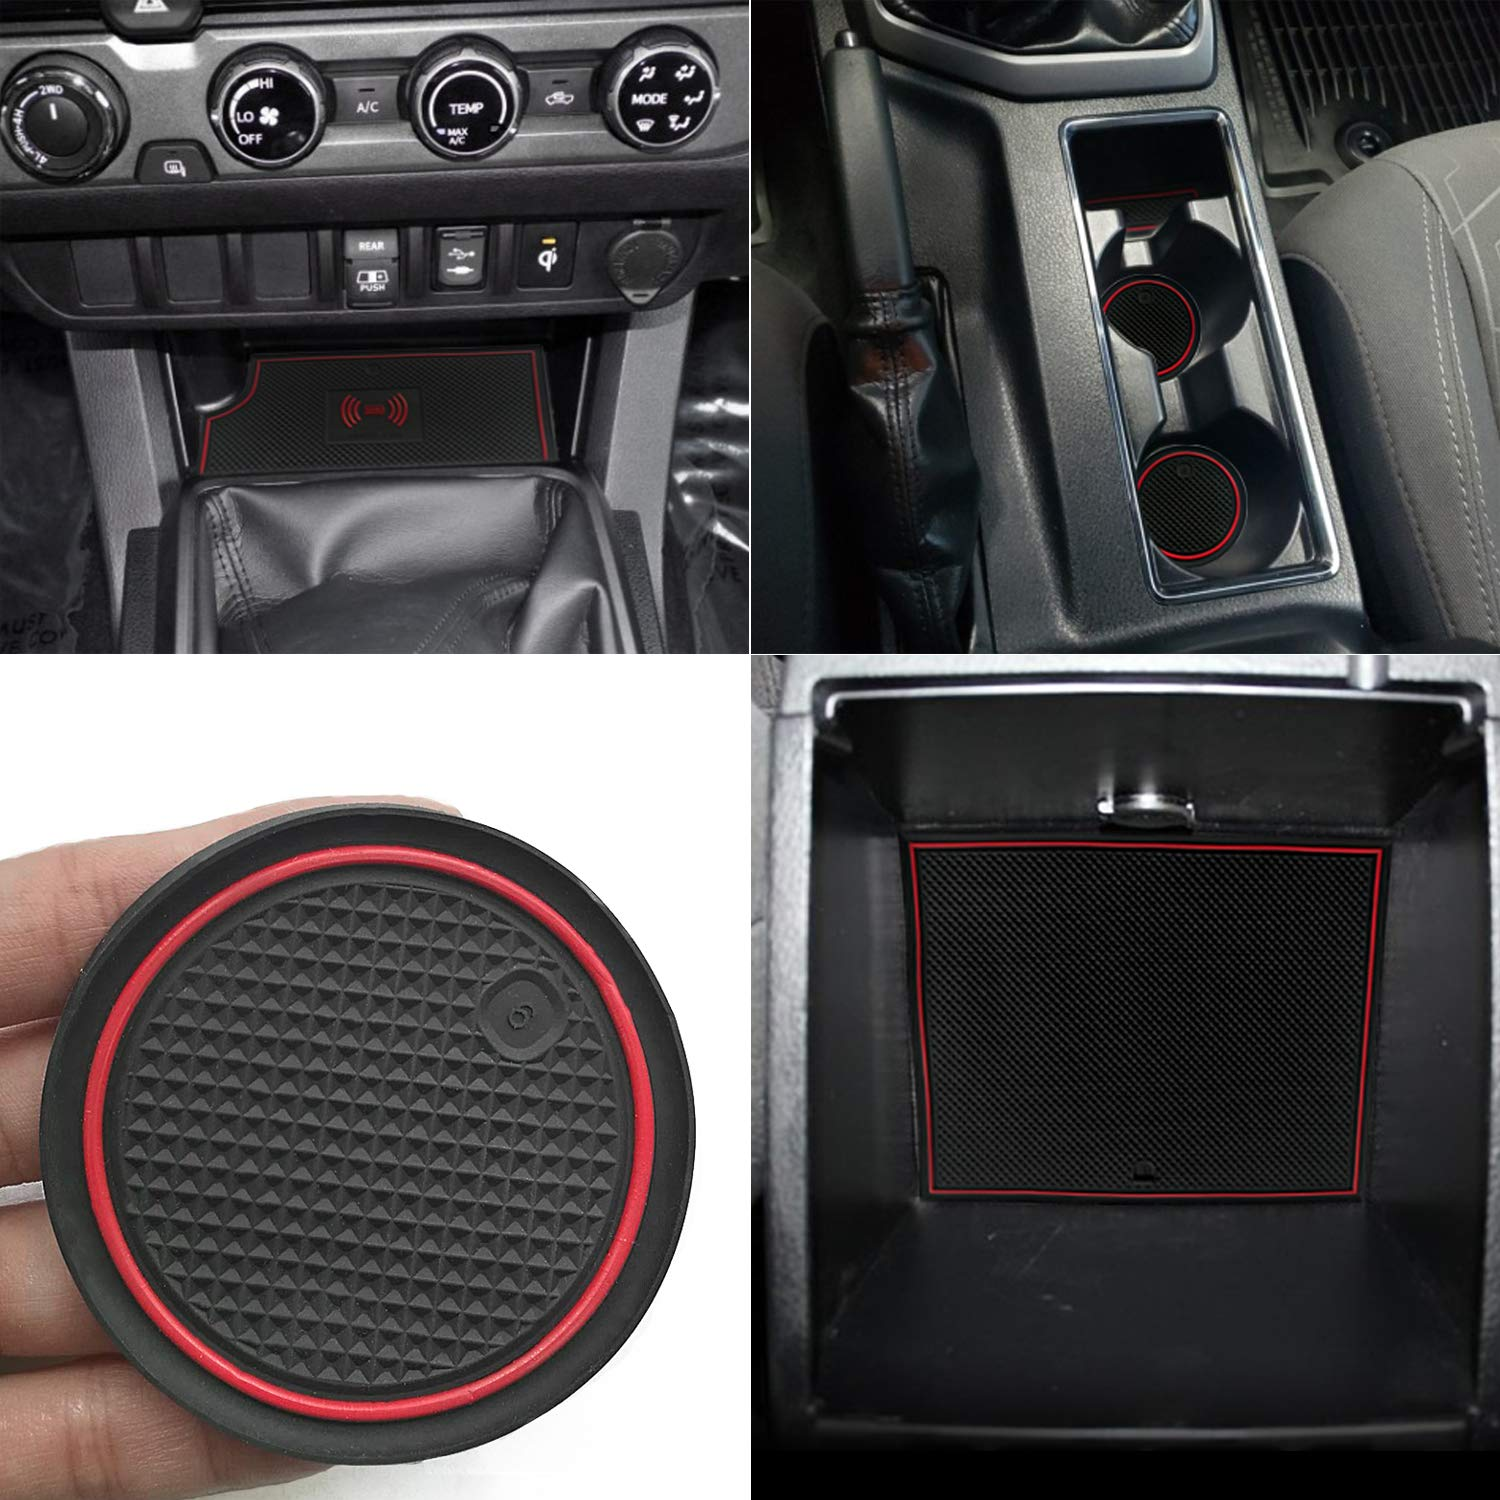 Auovo Anti-dust Custom Fit Cup Pads Door Liners Center Console Mats Accessories for Toyota Tacoma 2016 2017 2018 2019 Double Cab Full 4 Doors Red, Manual Transmission-Without QI Charging Models